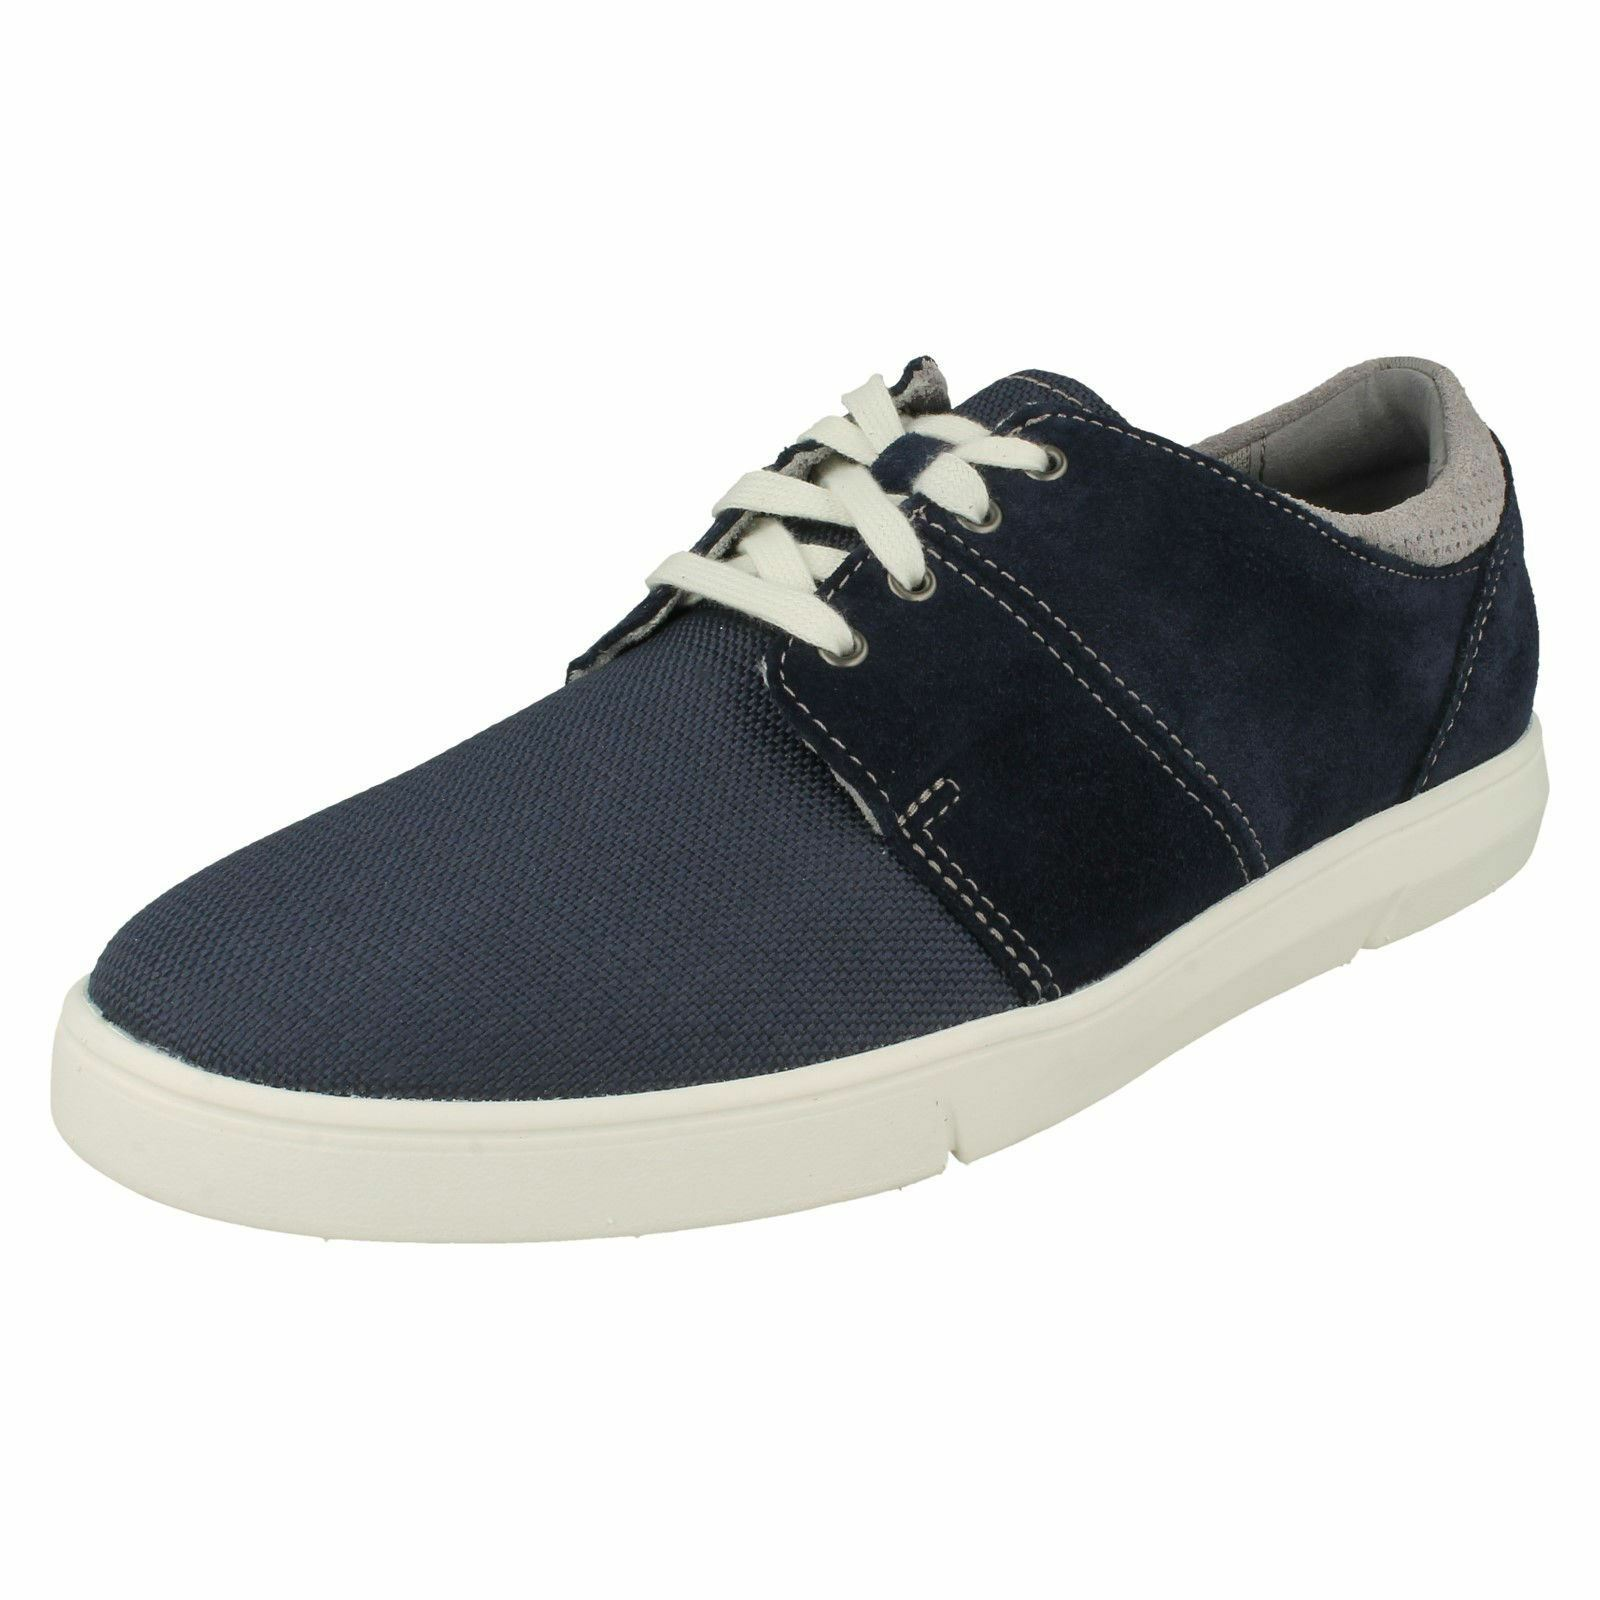 Mens Clarks Rounded Toe Casual Lace Up Suede & Textile schuhe Landry Edge